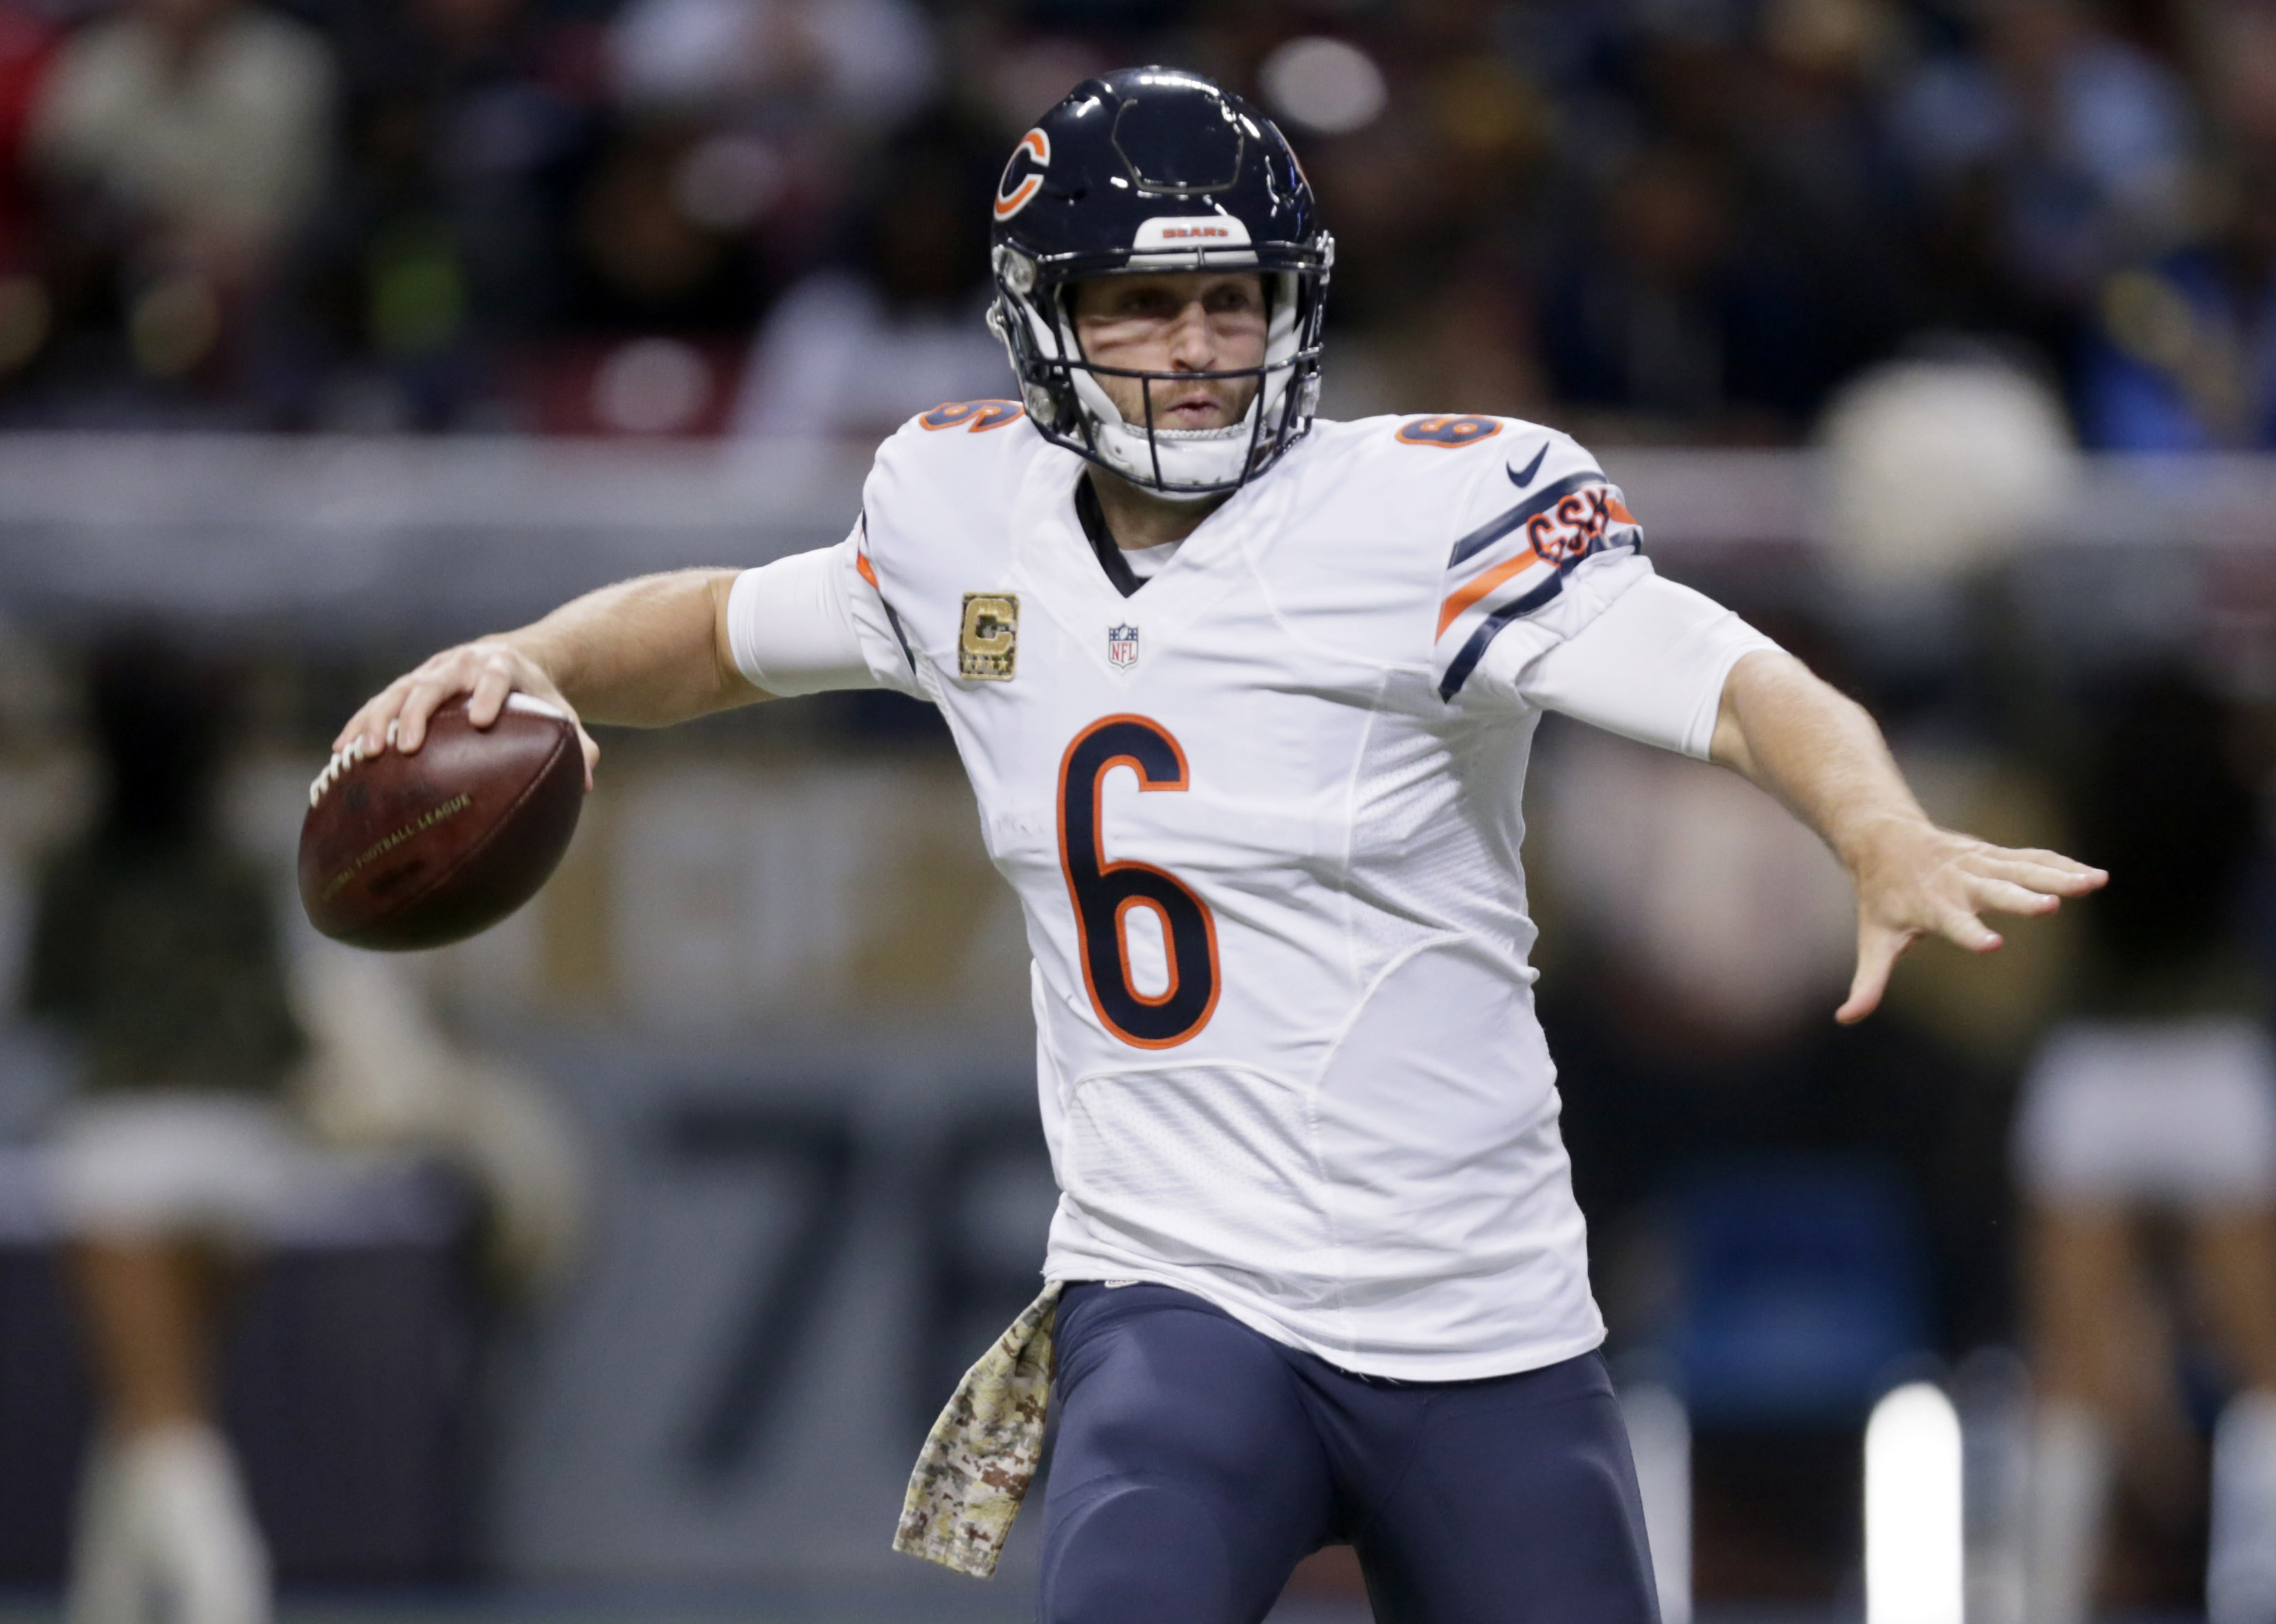 In this Nov. 15, 2015 photo, Chicago Bears quarterback Jay Cutler throws during the second quarter of an NFL football game against the St. Louis Rams Sunday, Nov. 15, 2015, in St. Louis. Cutler is playing about as well as he has since the Bears acquired h